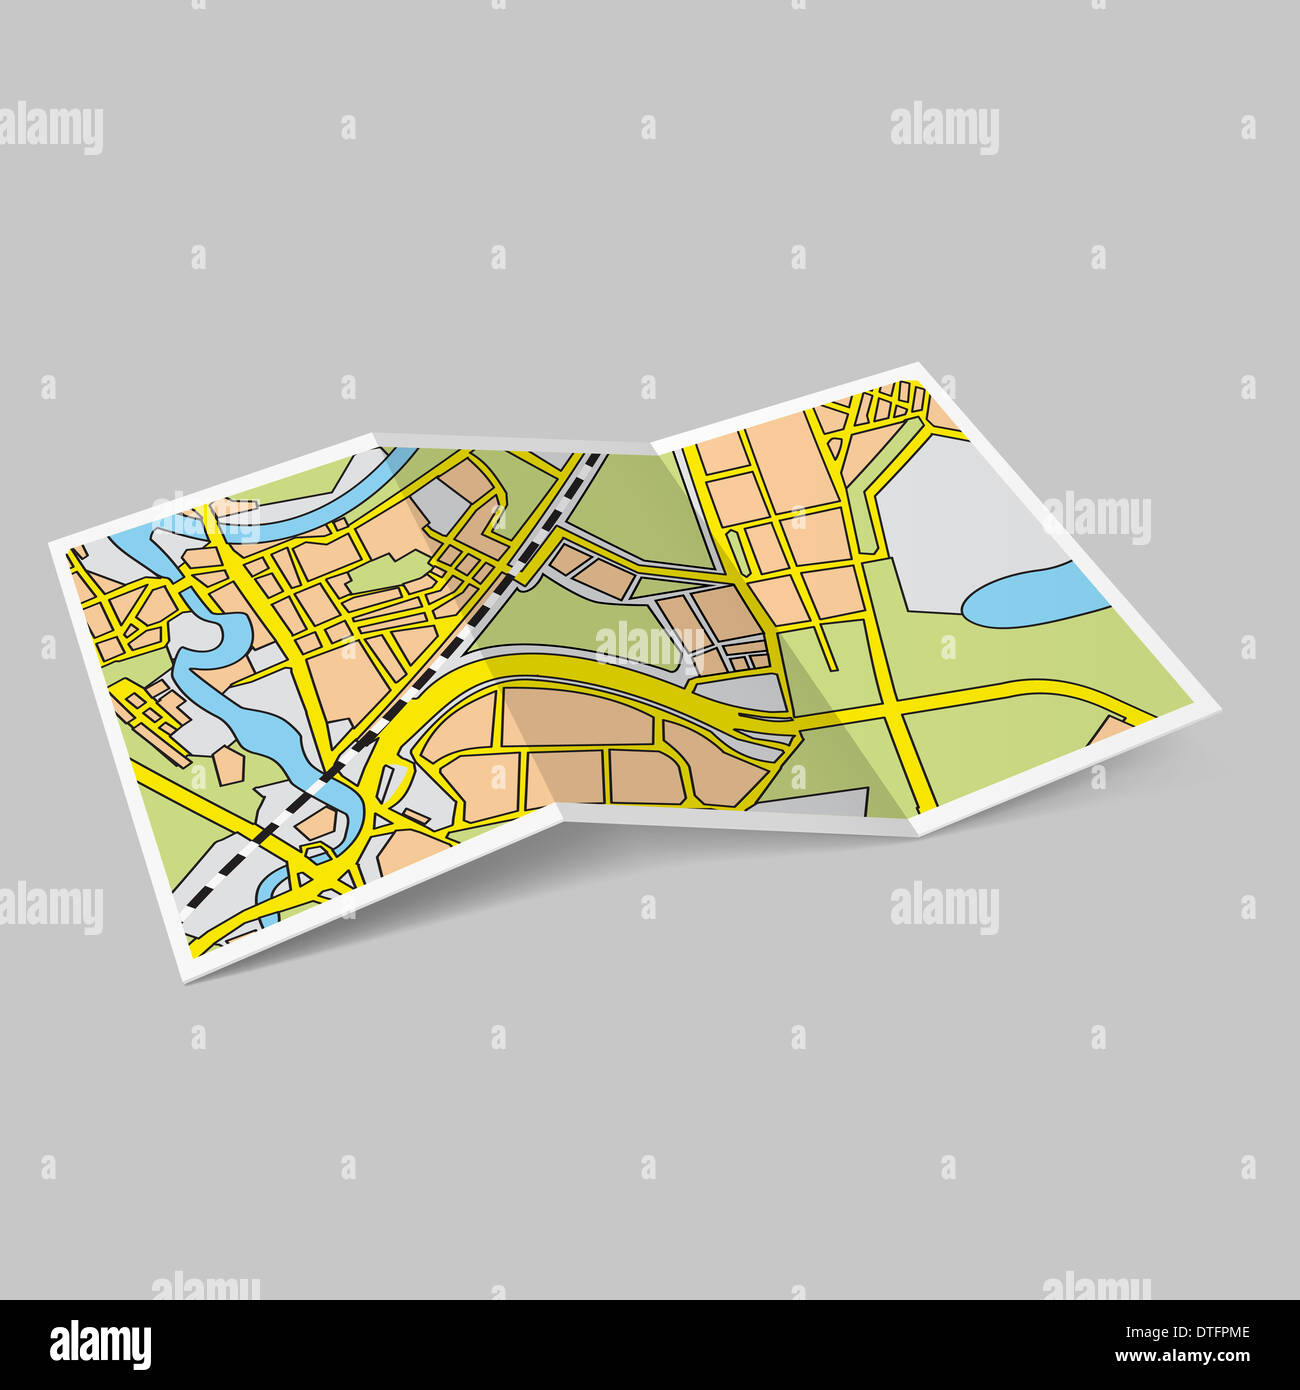 illustration of map booklet on grey background